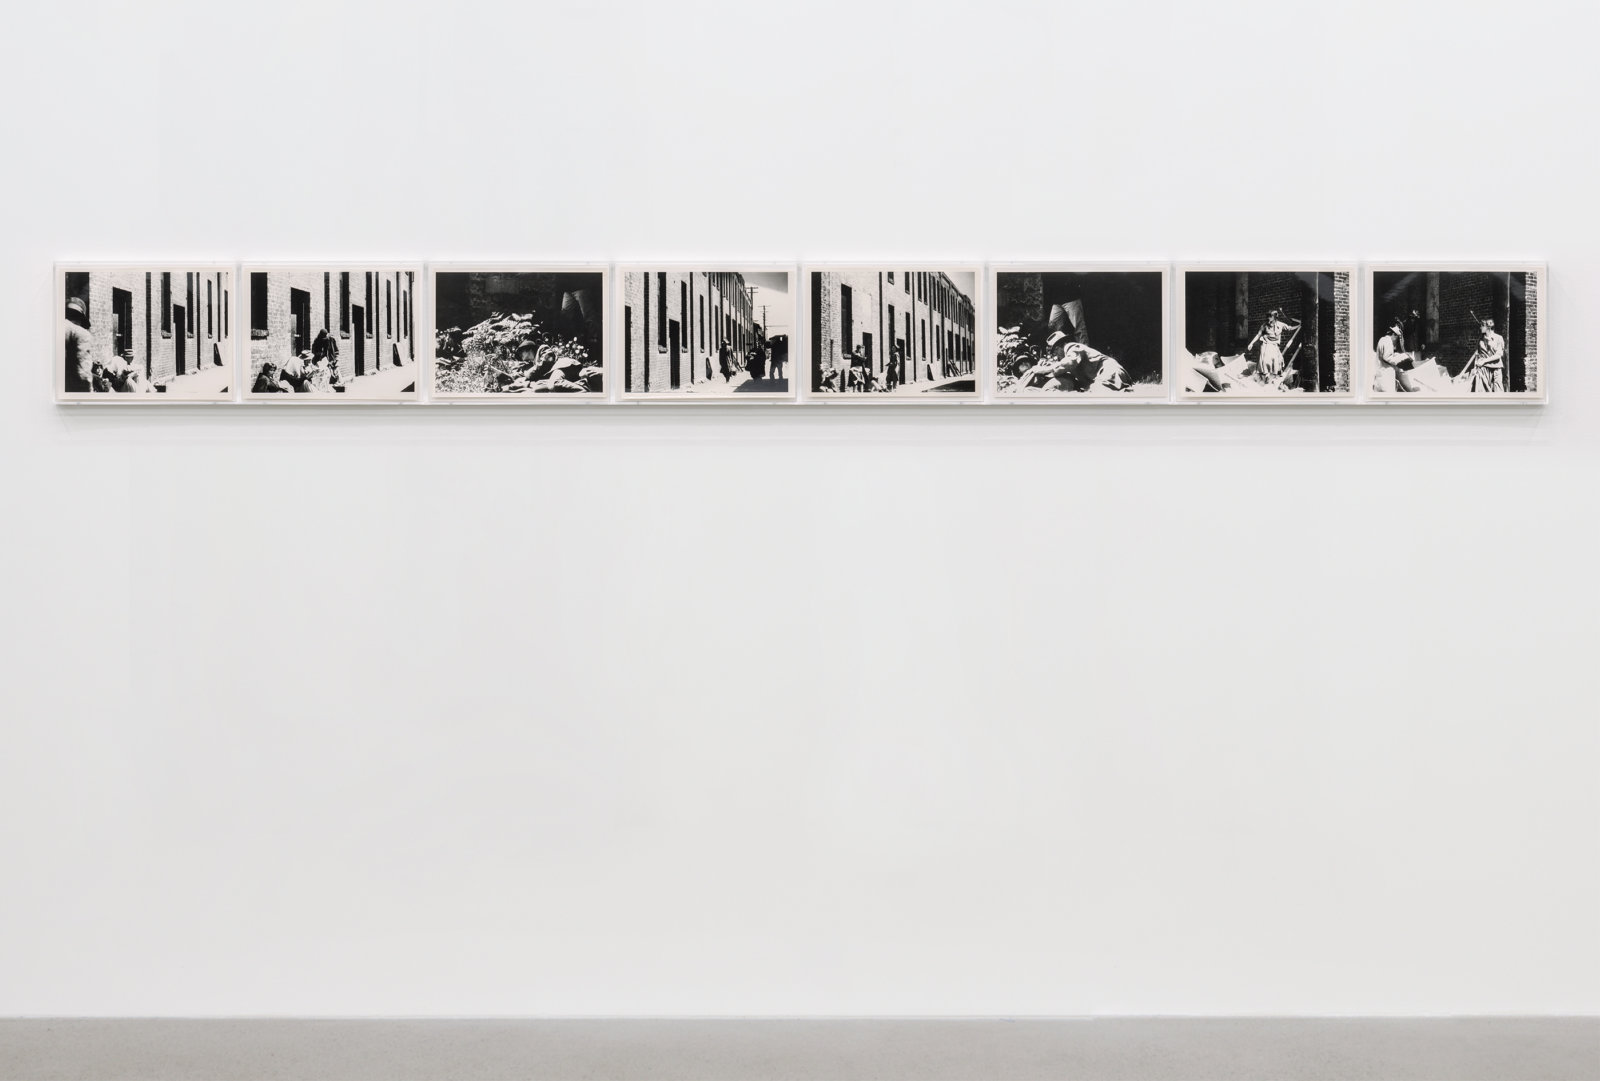 Ian Wallace, Poverty, 1980, 8 black and white photographs, 11 x 120 in. (28 x 305 cm)